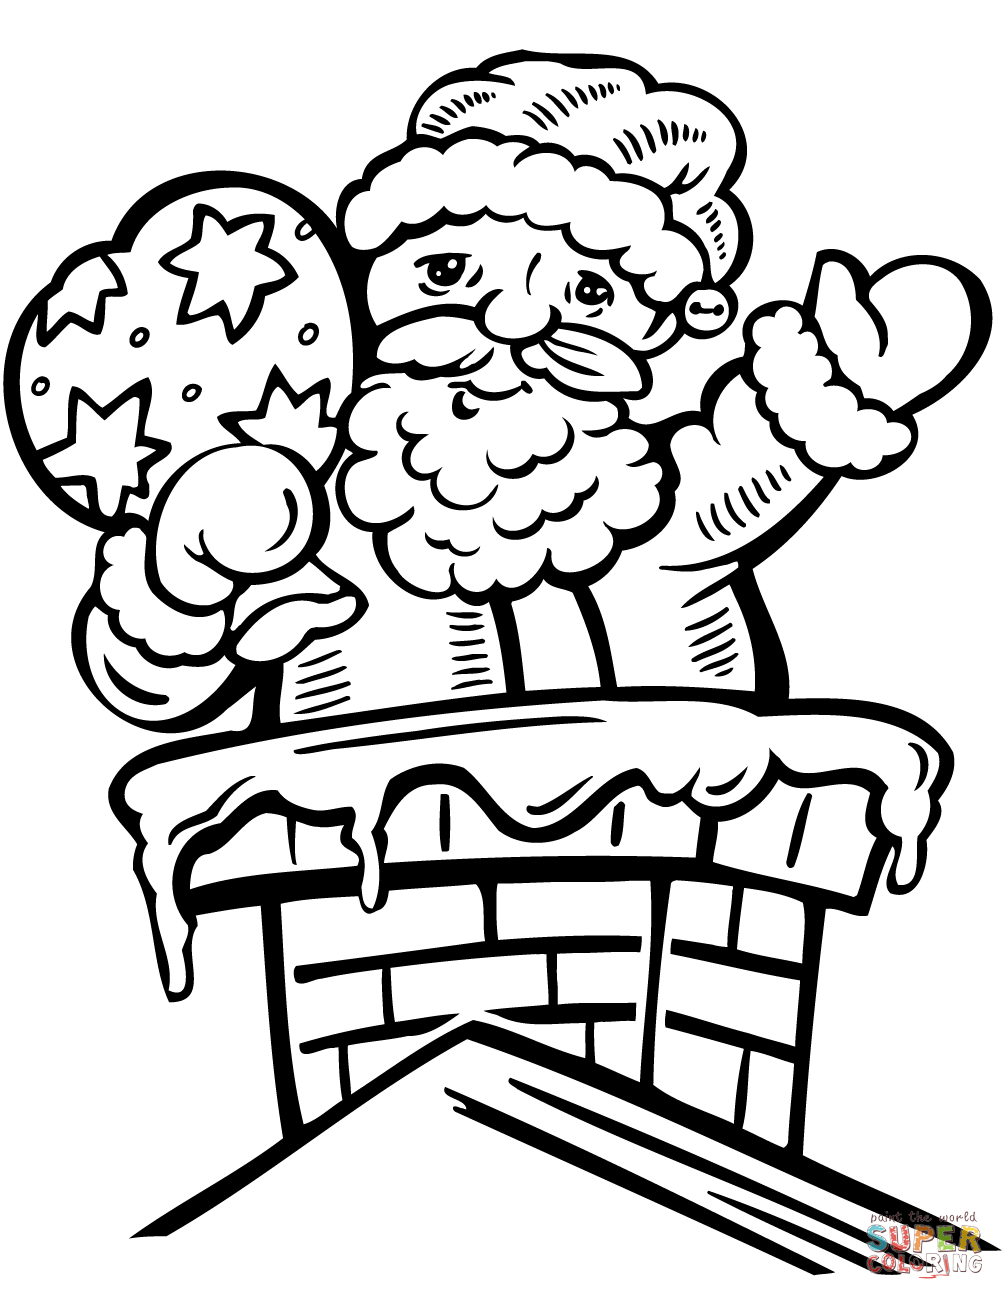 1005x1300 Santa In The Chimney Coloring Page Free Printable Coloring Pages